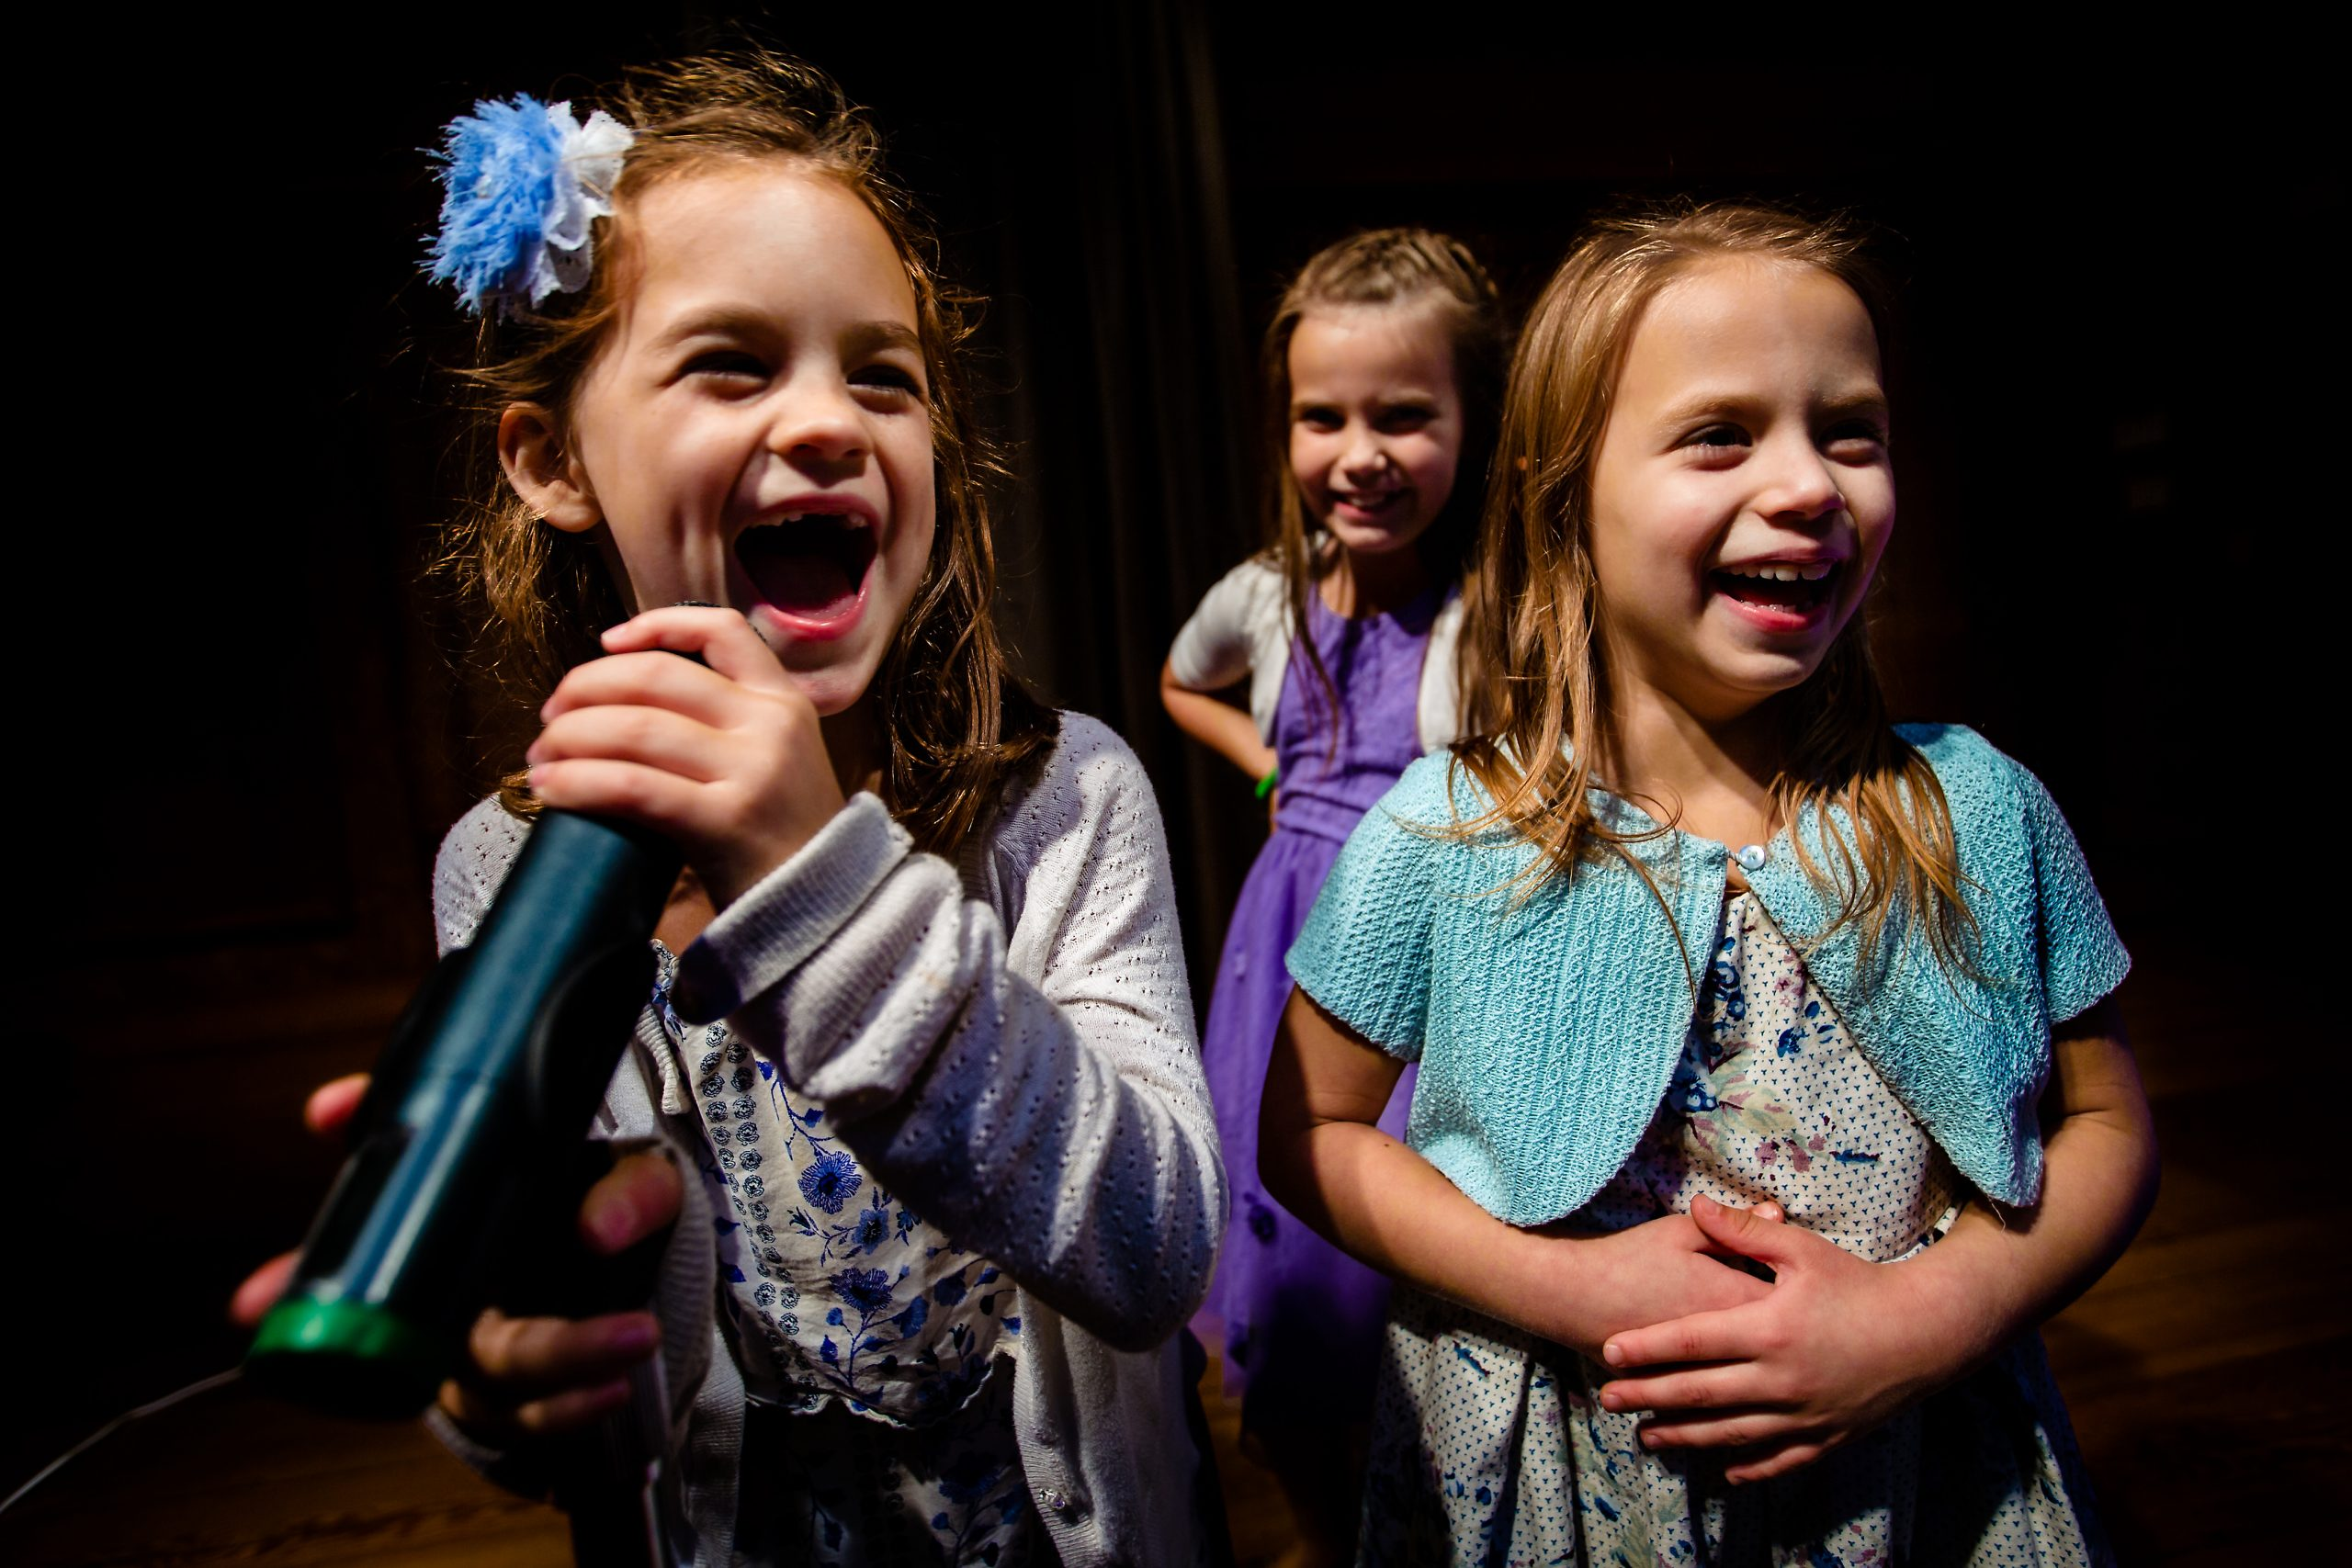 Three young girls perform